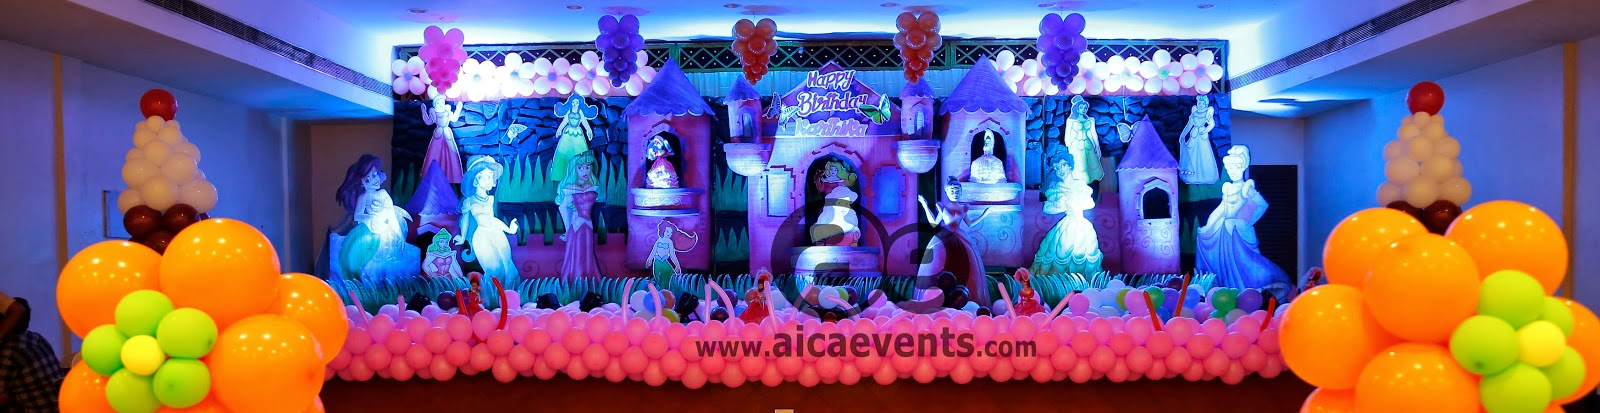 Stage Backdrop & Aicaevents India: Princess Theme Birthday decorations